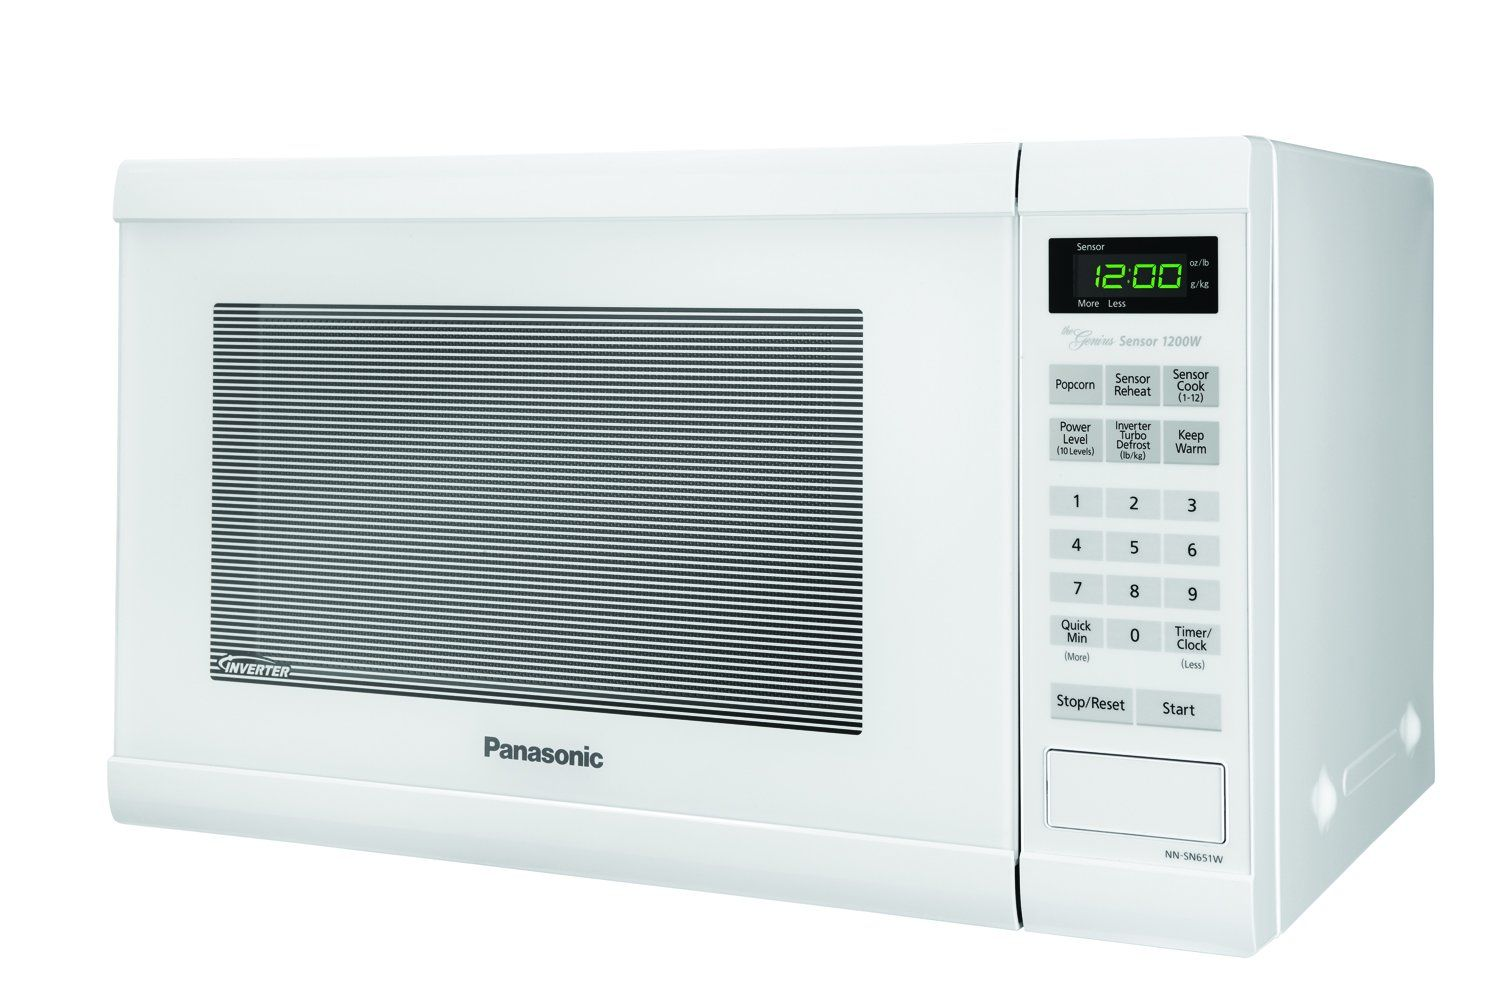 Panasonic Nnsn651waz Countertop Microwave With Inverter Technology